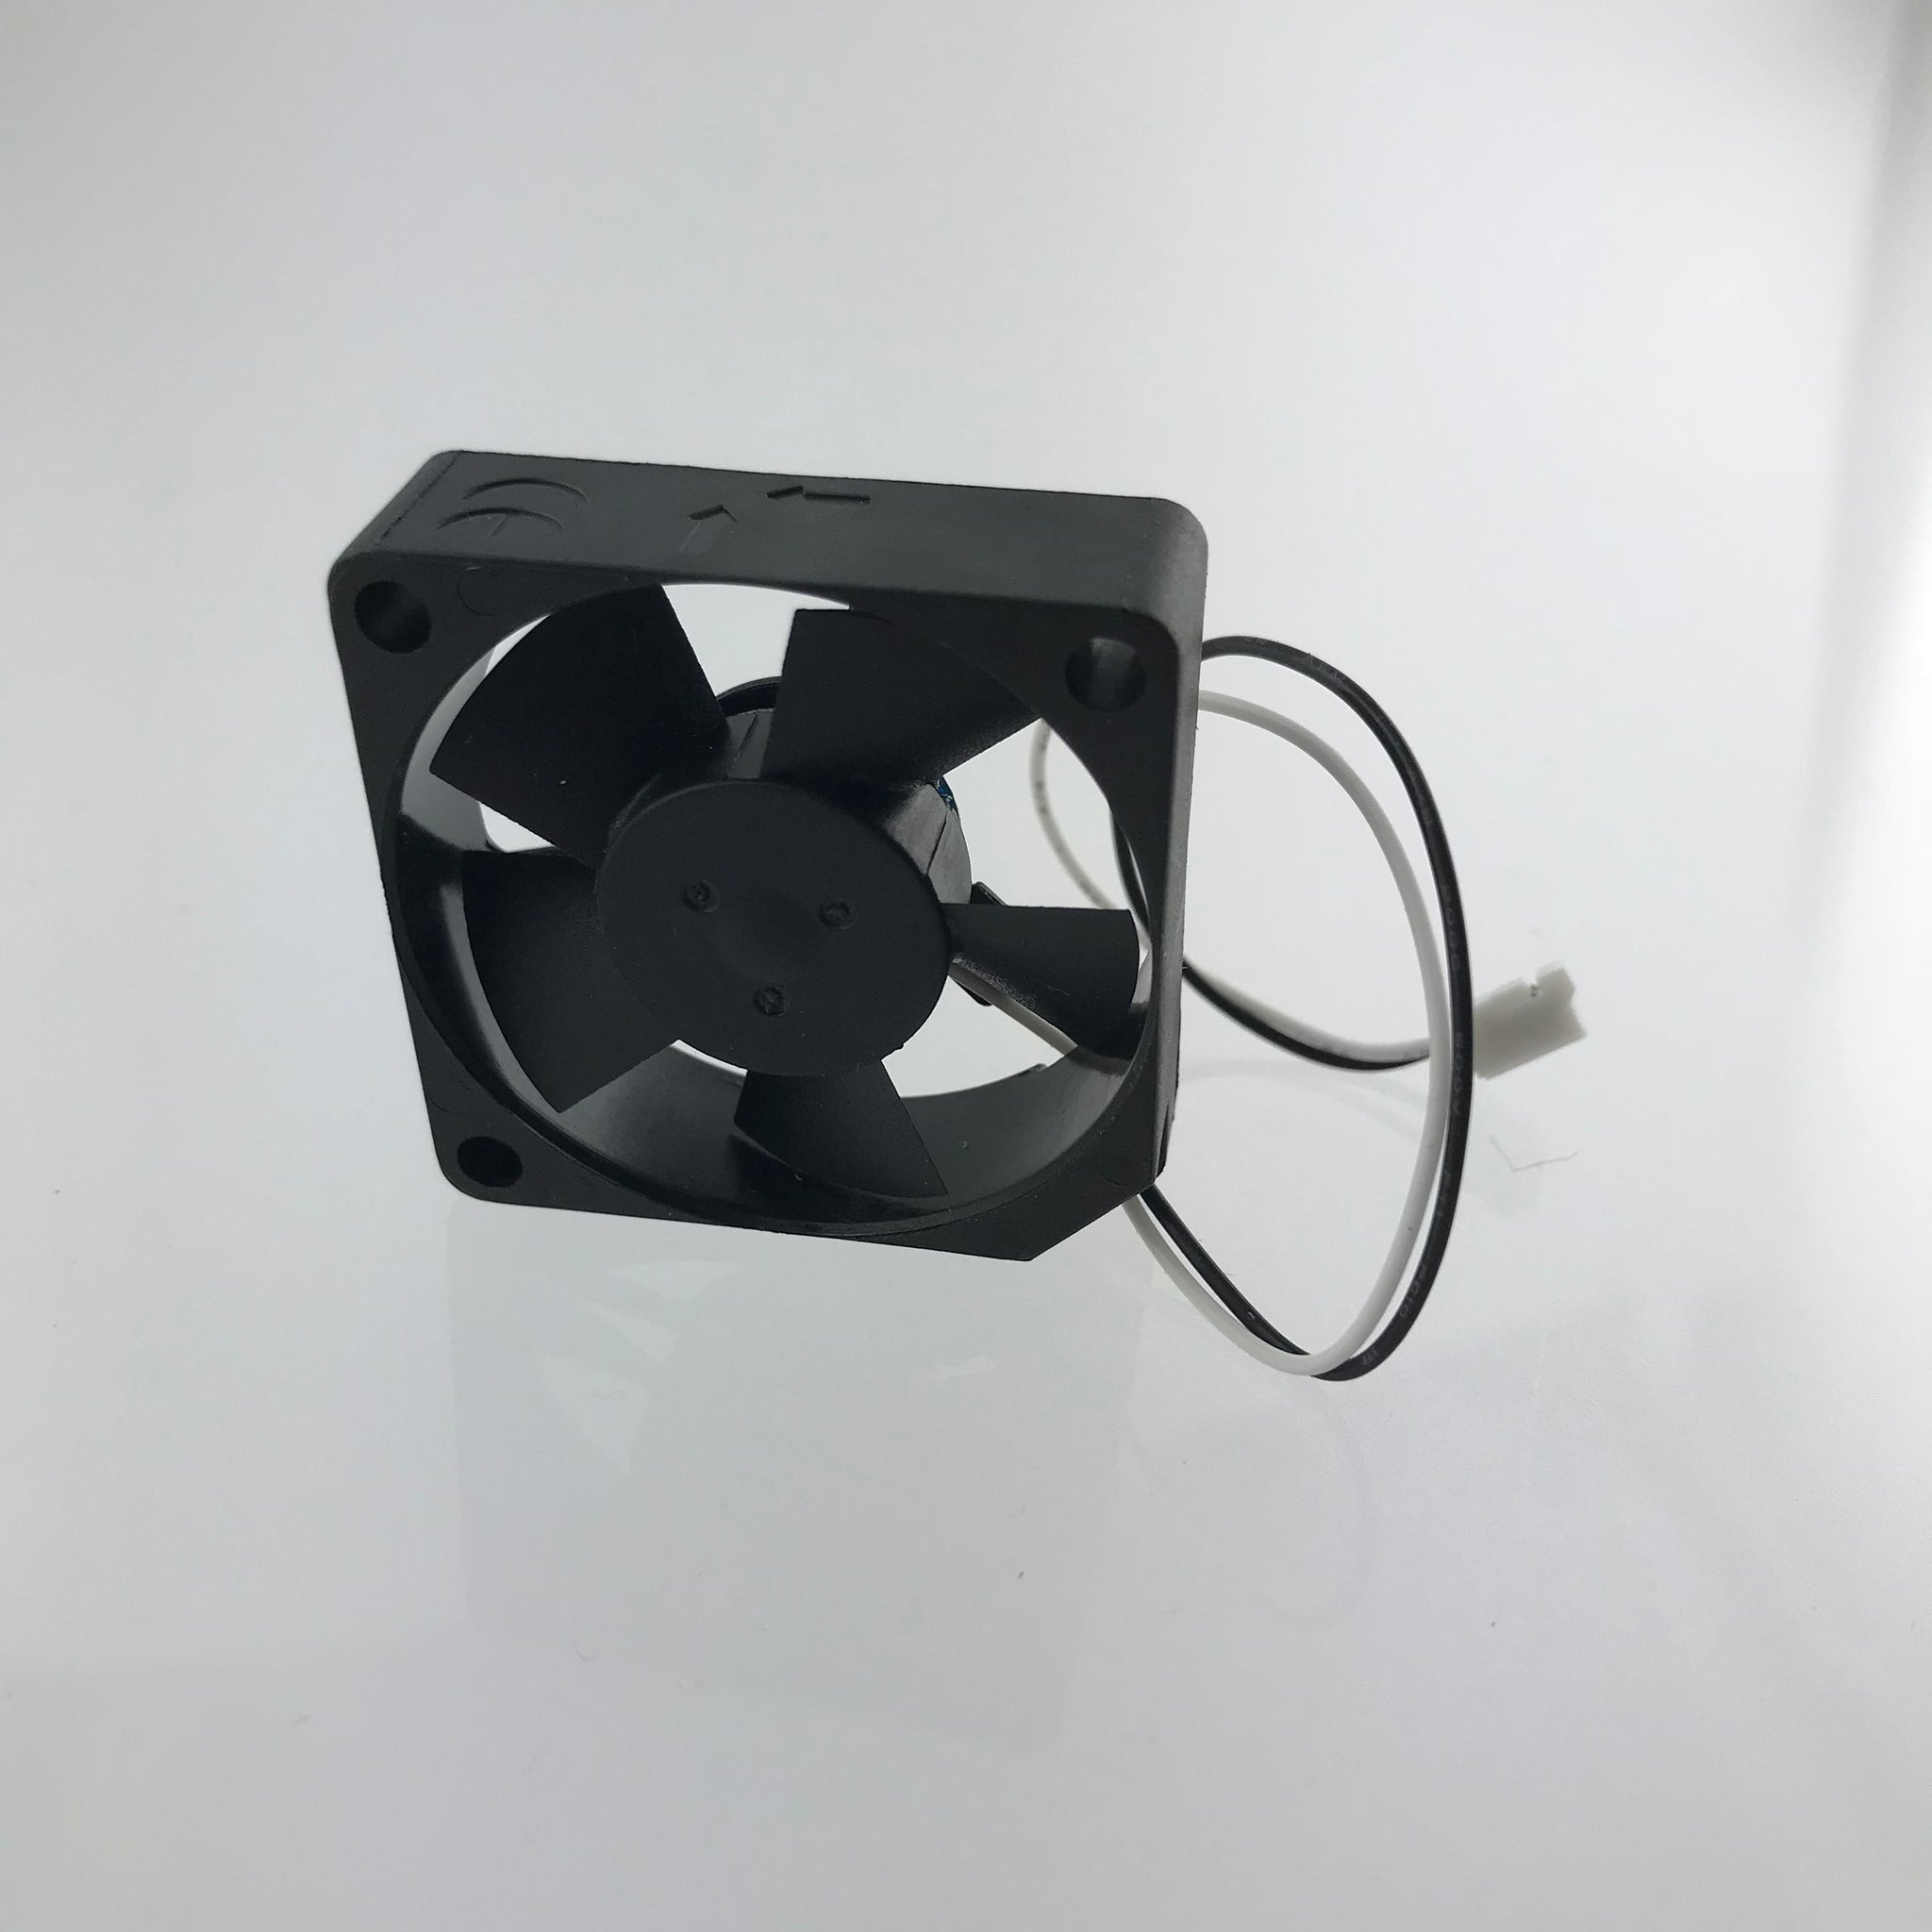 Hot End Cooling Fan (UM3/S5/S3)